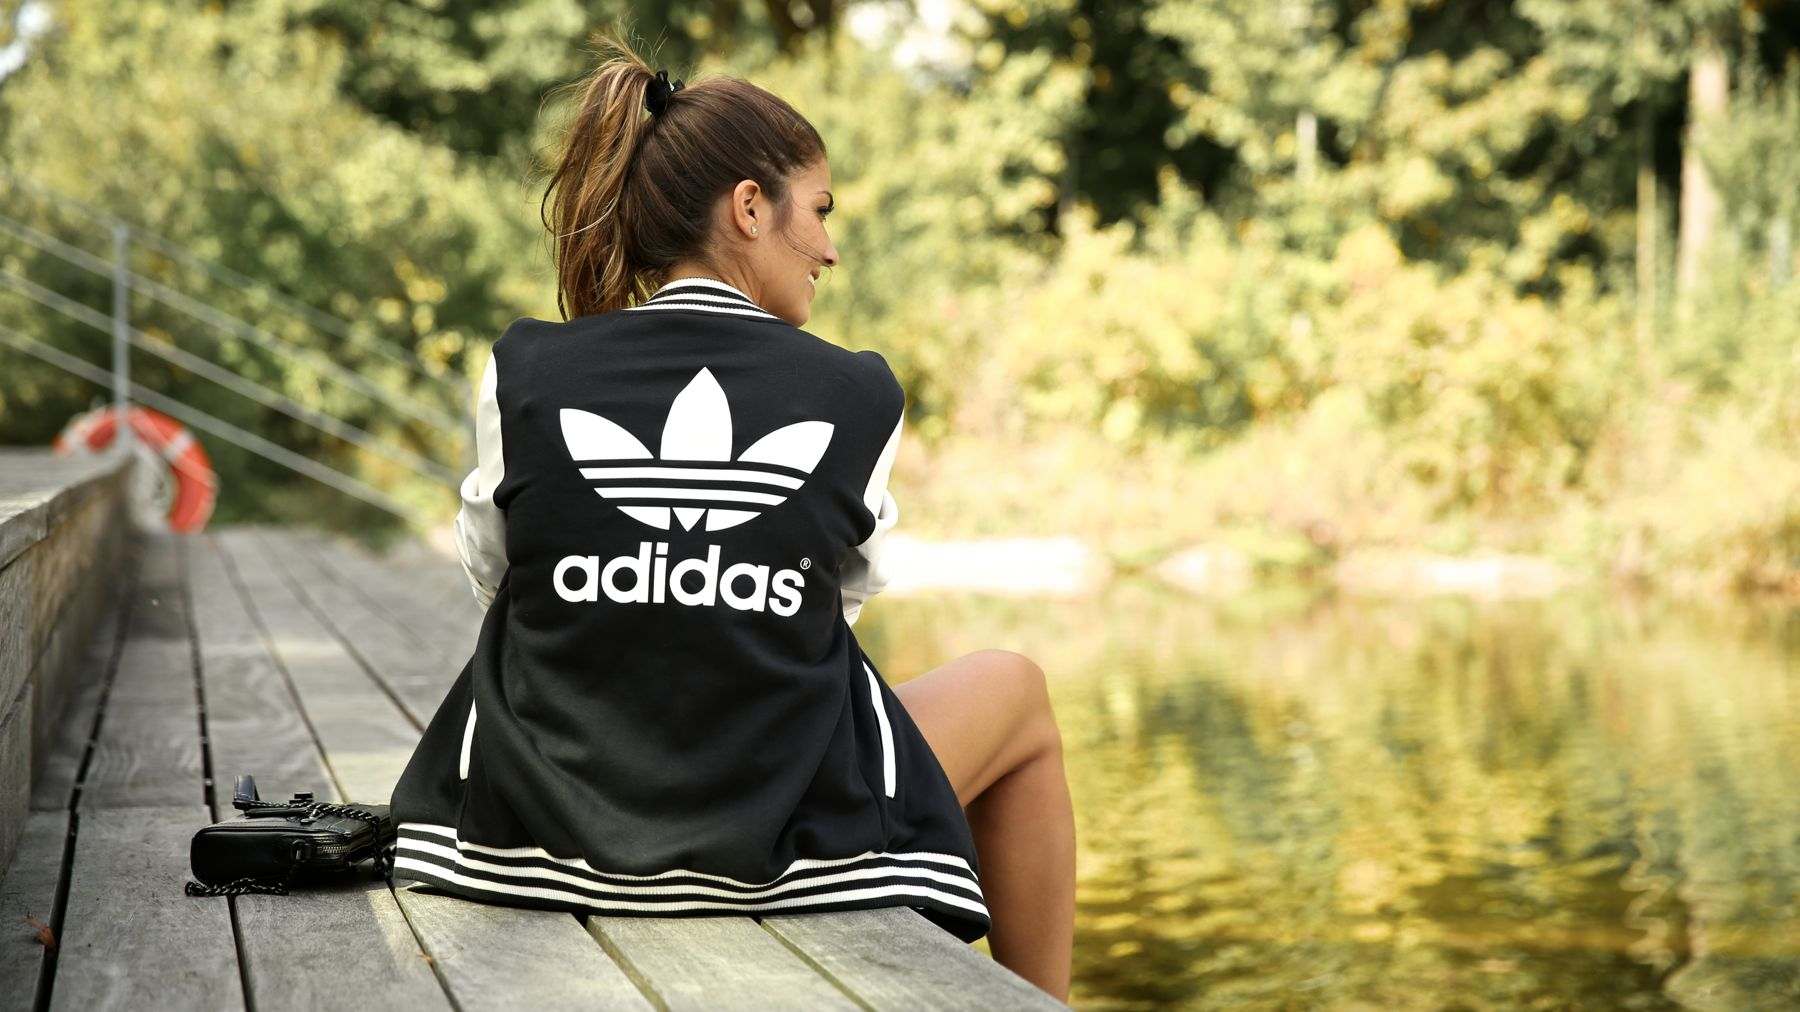 trendy_taste-look-outfit-street_style-ootd-blog-blogger-fashion_spain-moda_españa-stan_smith-adidas-herzo-sport_chic-baseball-chaqueta-shorts-11